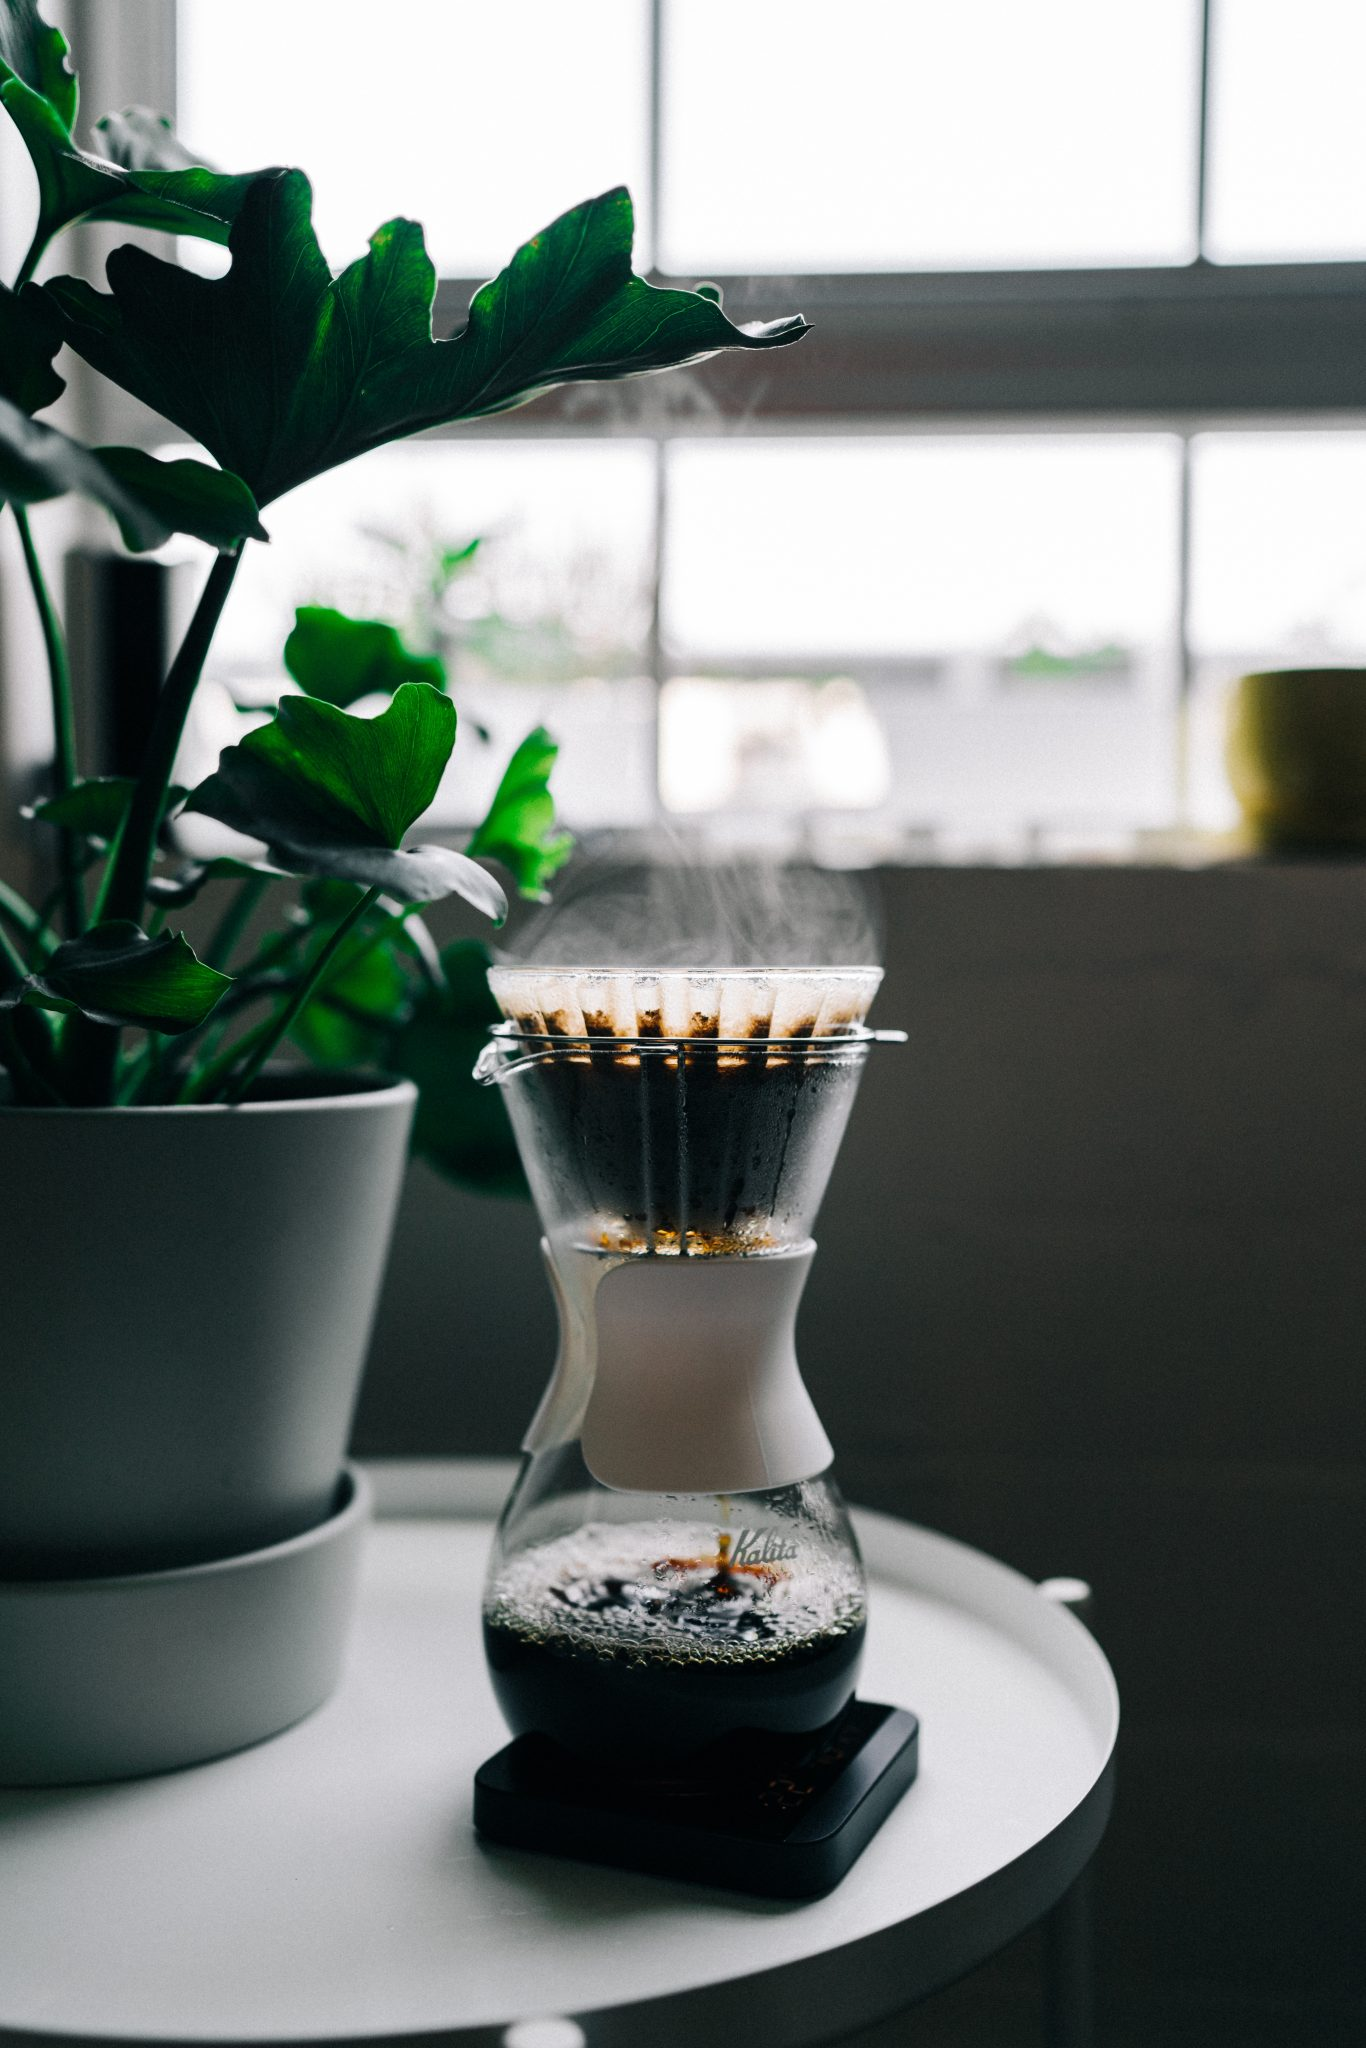 Brewing Your Own Coffee turned on black and grey coffeemaker near green leaf plant